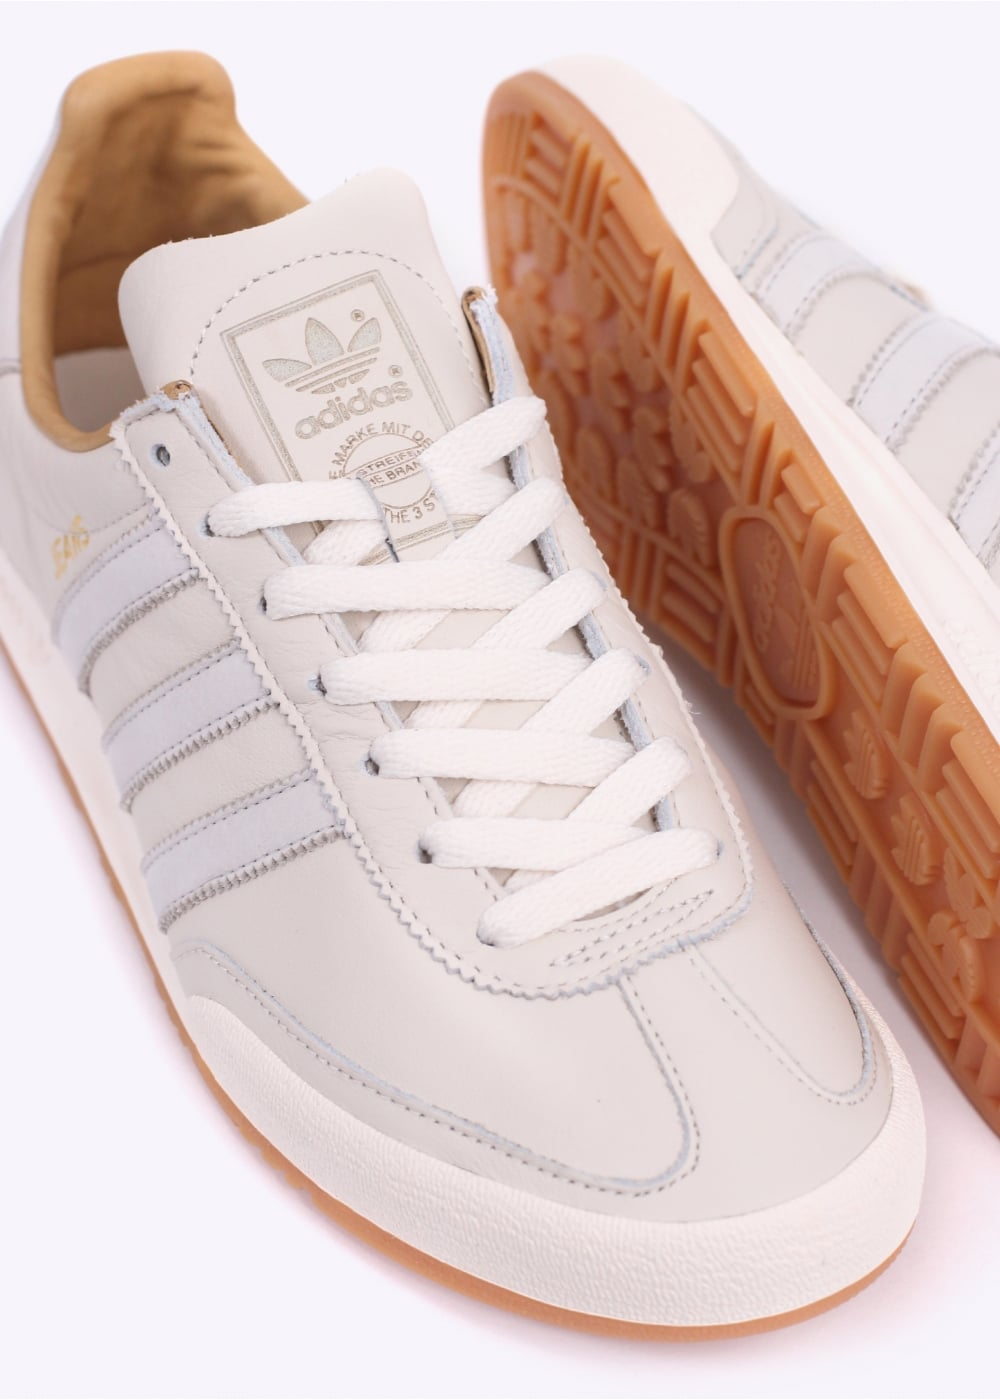 Jeans MKII Trainers - White by adidas